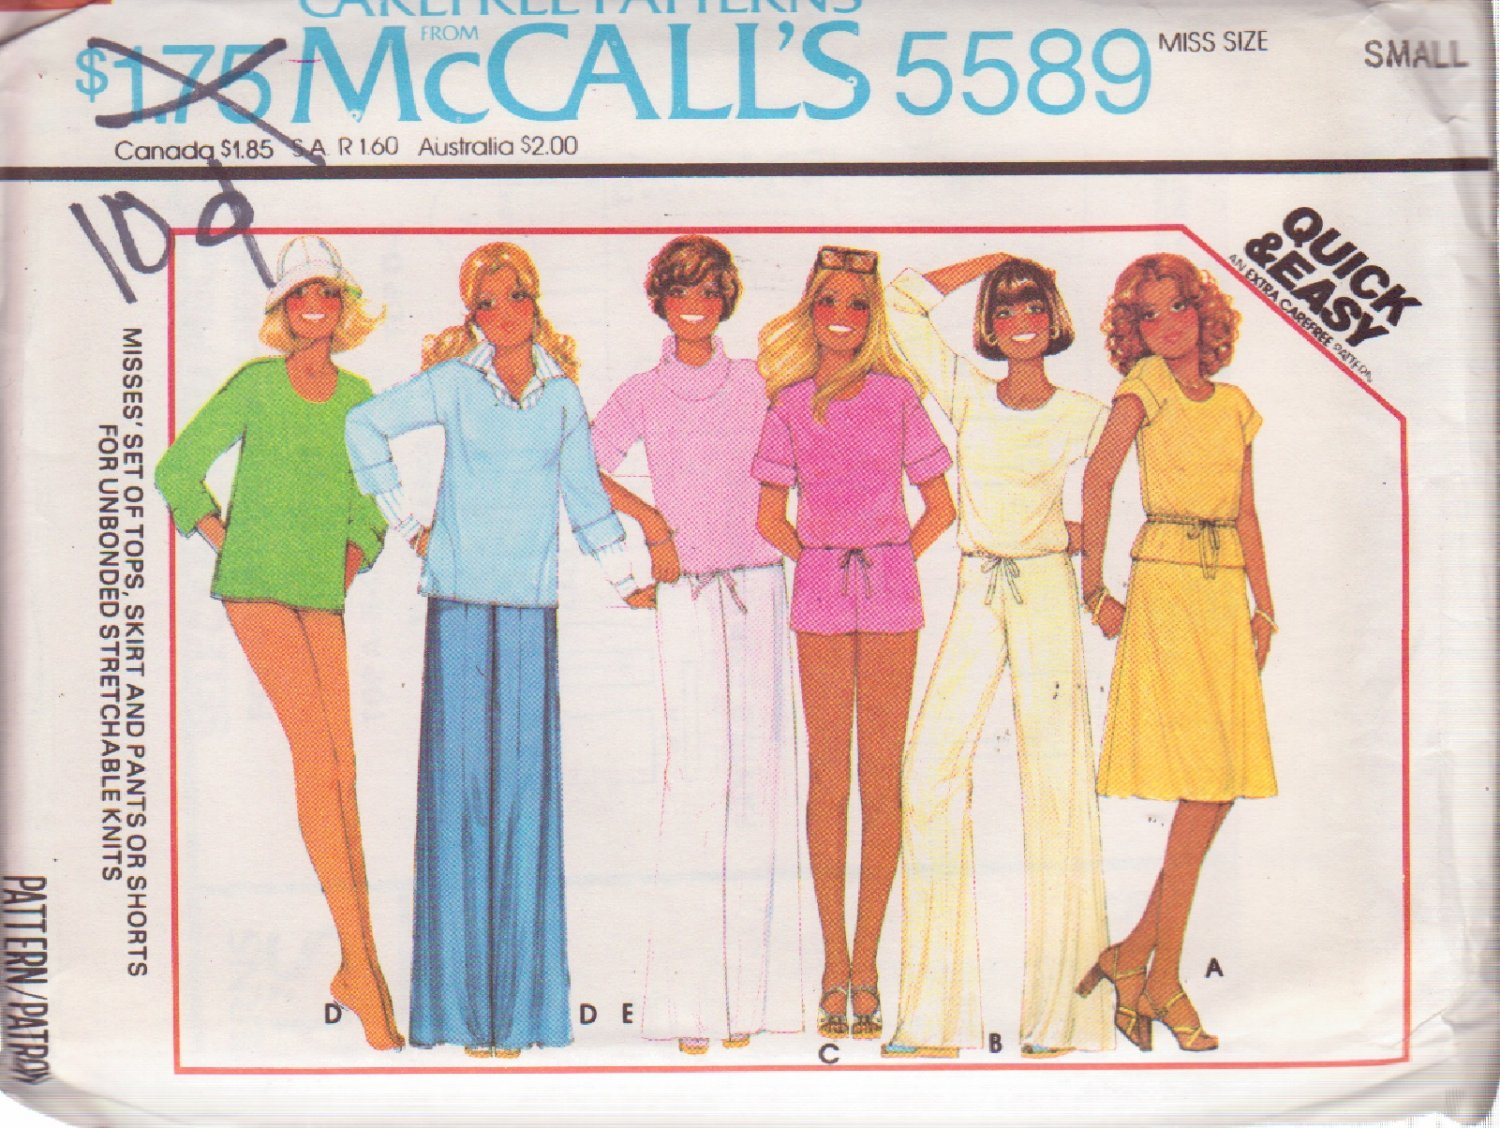 McCALL'S PATTERN 5589 SZ SMALL 10/12 MISSES' TOPS & SKIRT PANTS SHORTS UNCUT